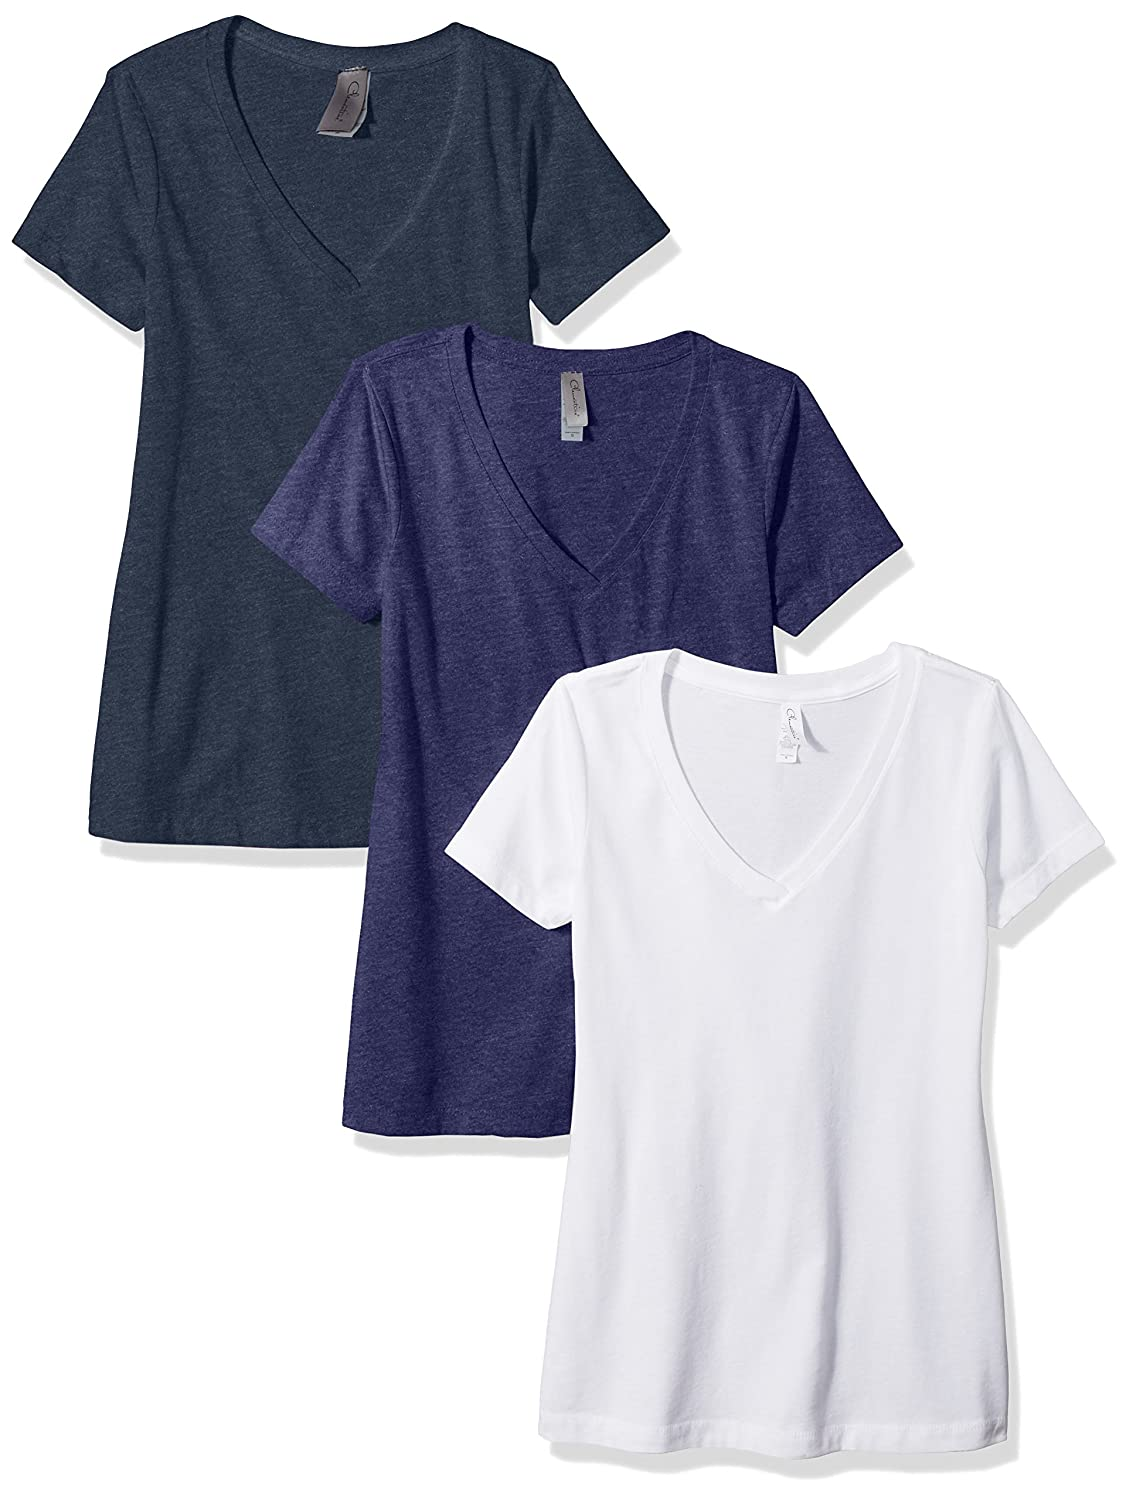 f947ffcc8e79f Clementine Apparel Women s Petite Plus Deep V Neck Tee (Pack of 3 ...